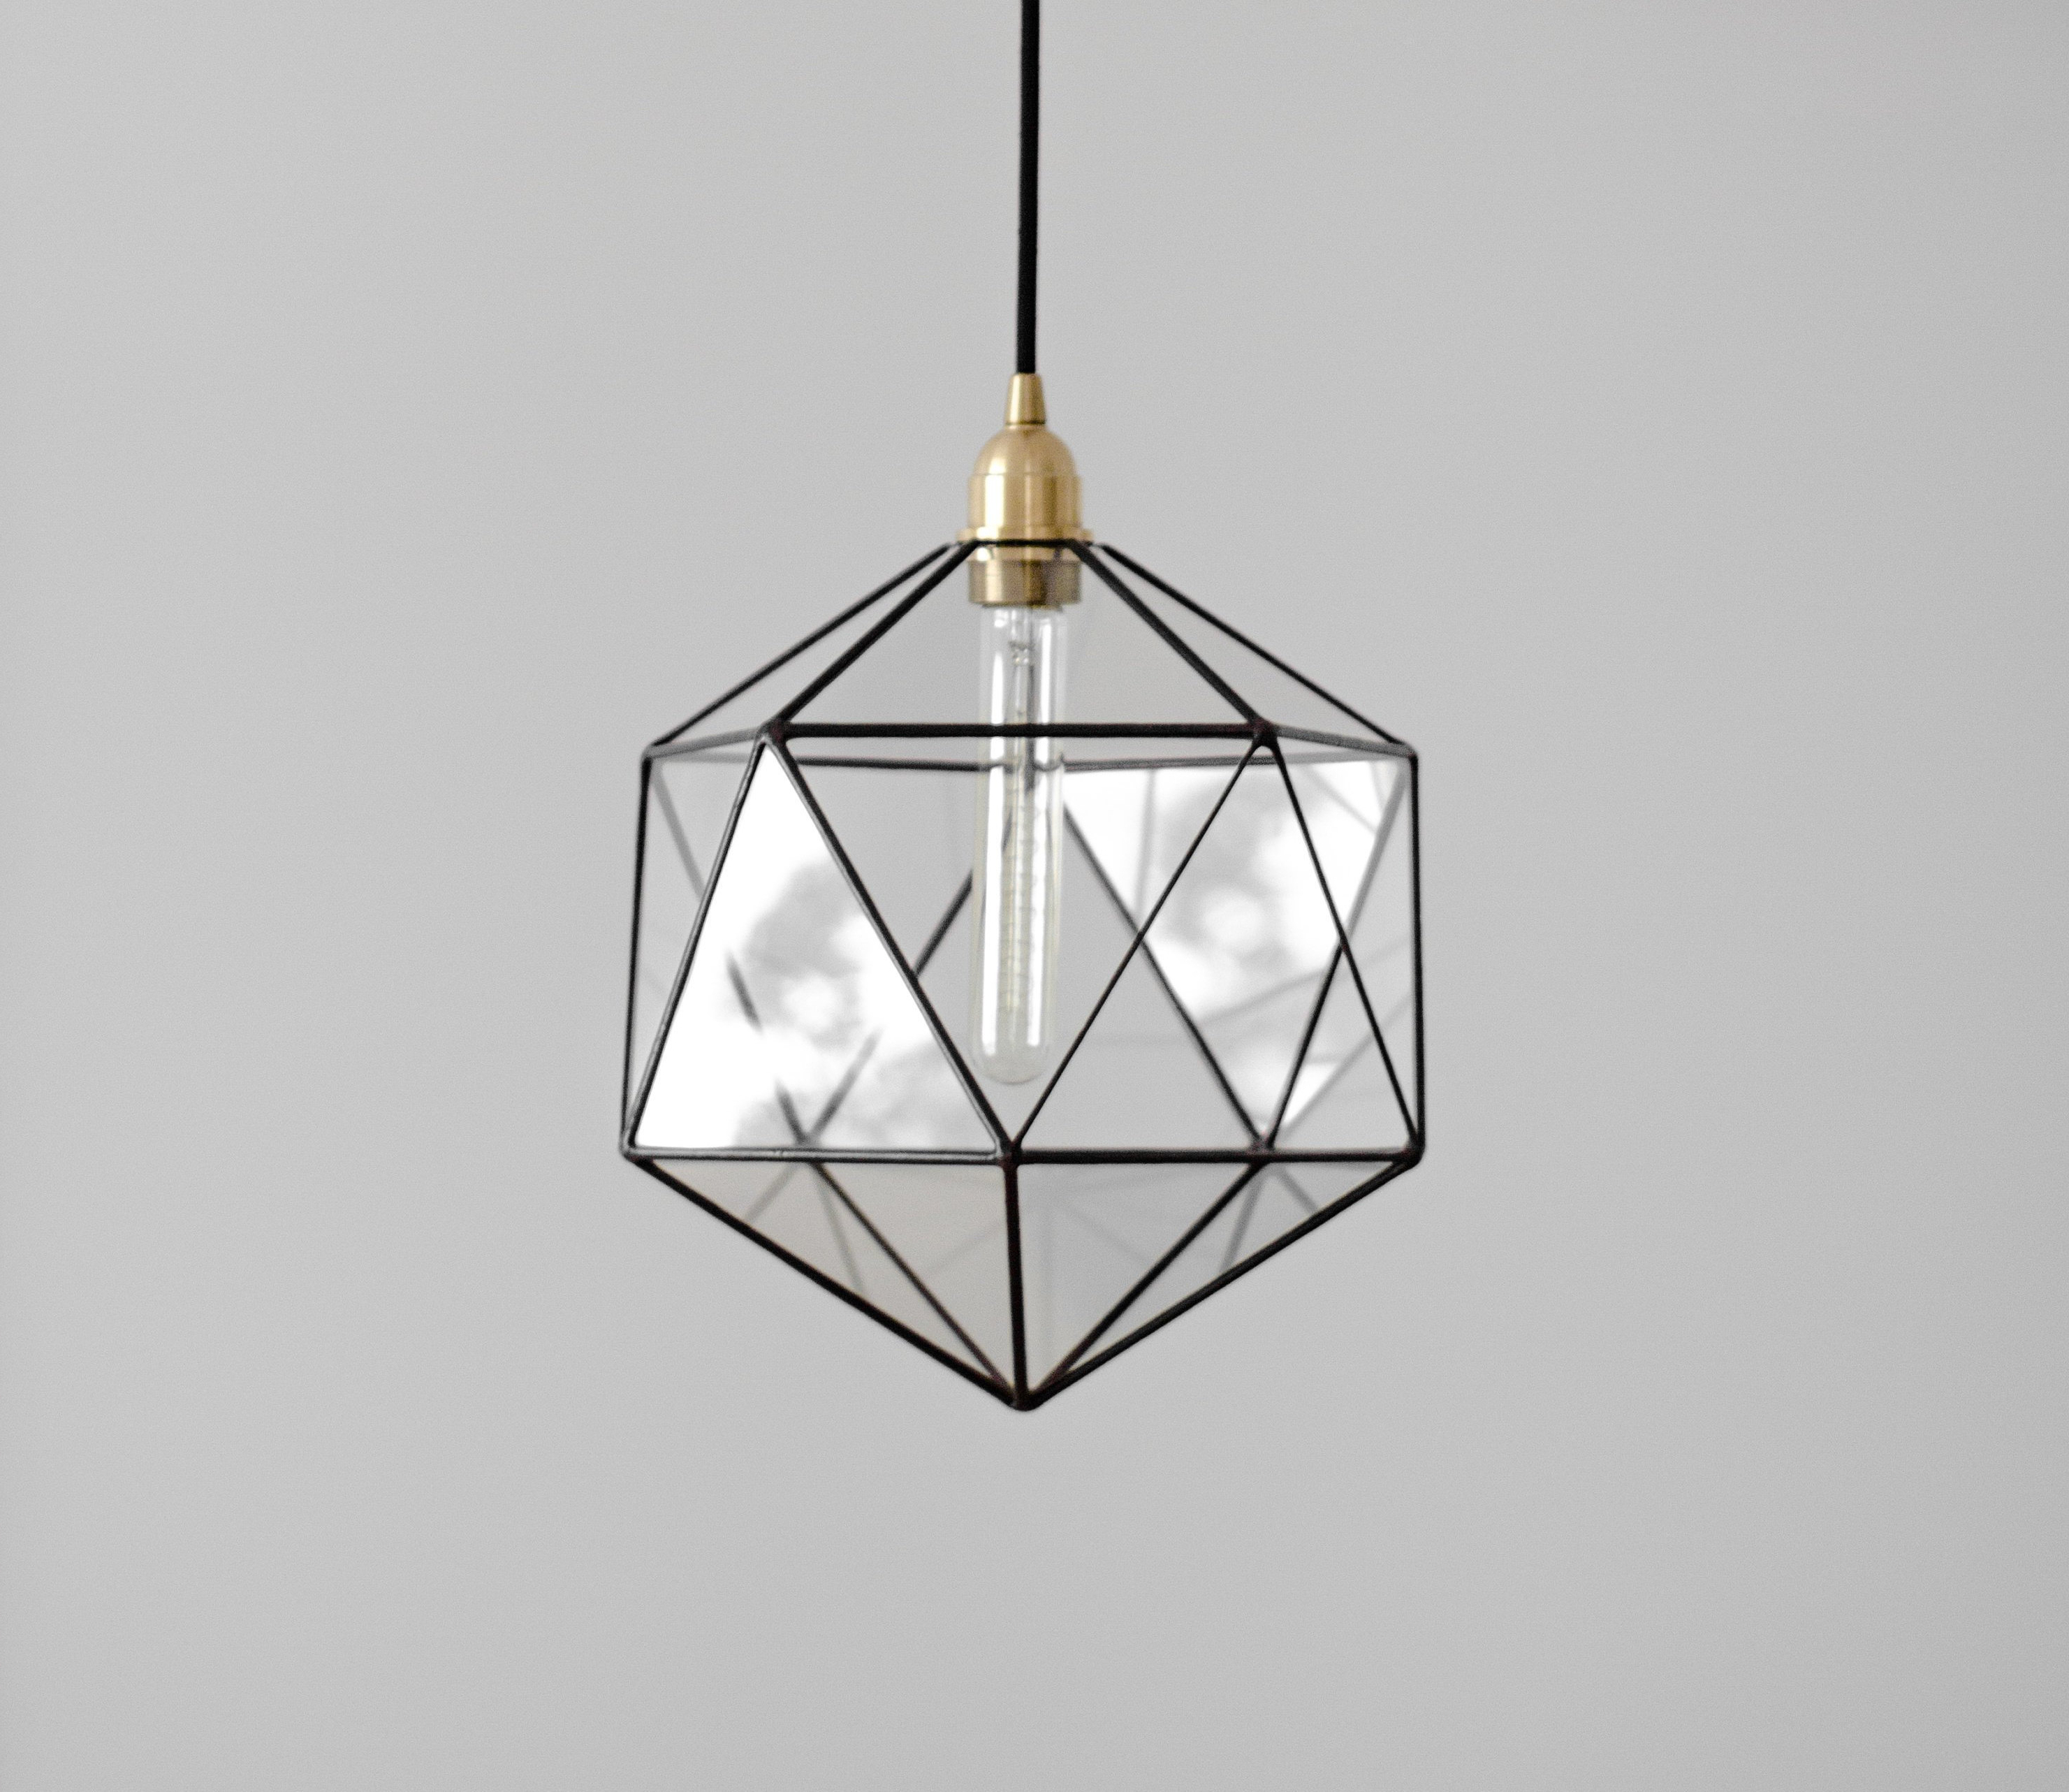 Recent Rossi Industrial Vintage 1-Light Geometric Pendants throughout Icosahedron Glass Chandelier / Geometric Pendant Light / Modern Warm Retro  Bulb Lamp / 70's Industrial Retro Furniture / Hanging Lighting